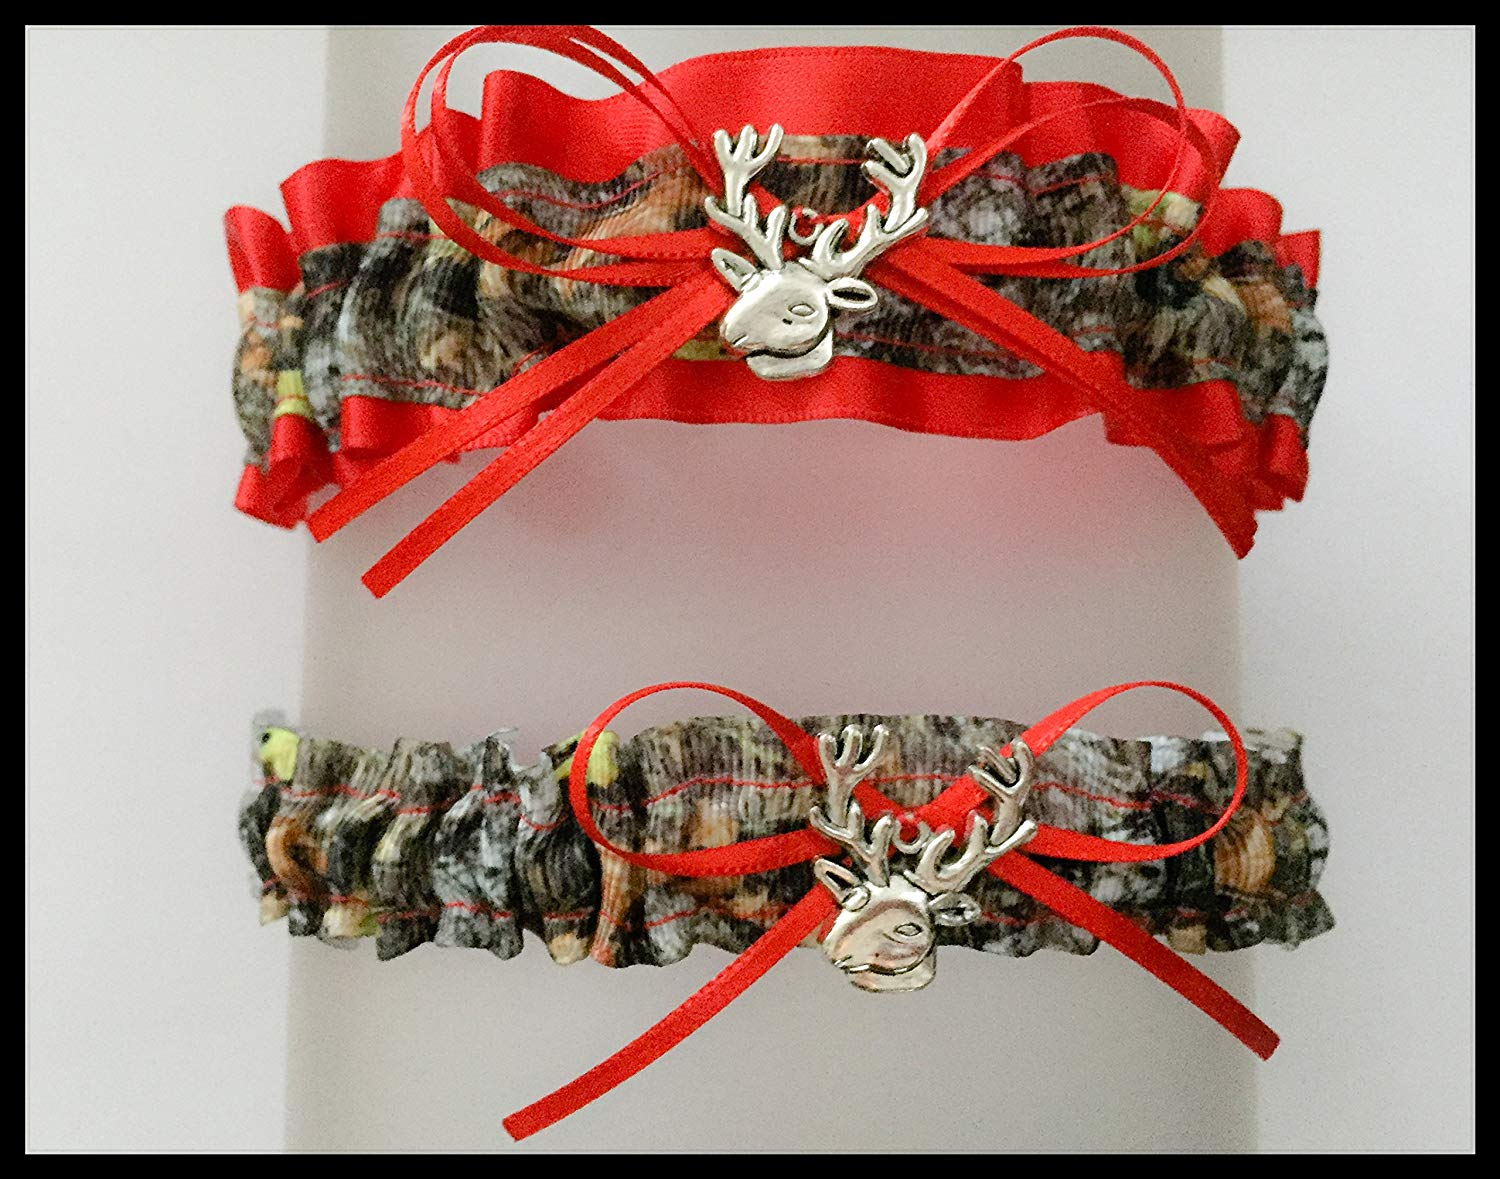 a2a82032995 Get Quotations · Sexy Mossy Oak Red Satin Keepsake Or Garter Set - Pick A  Charm